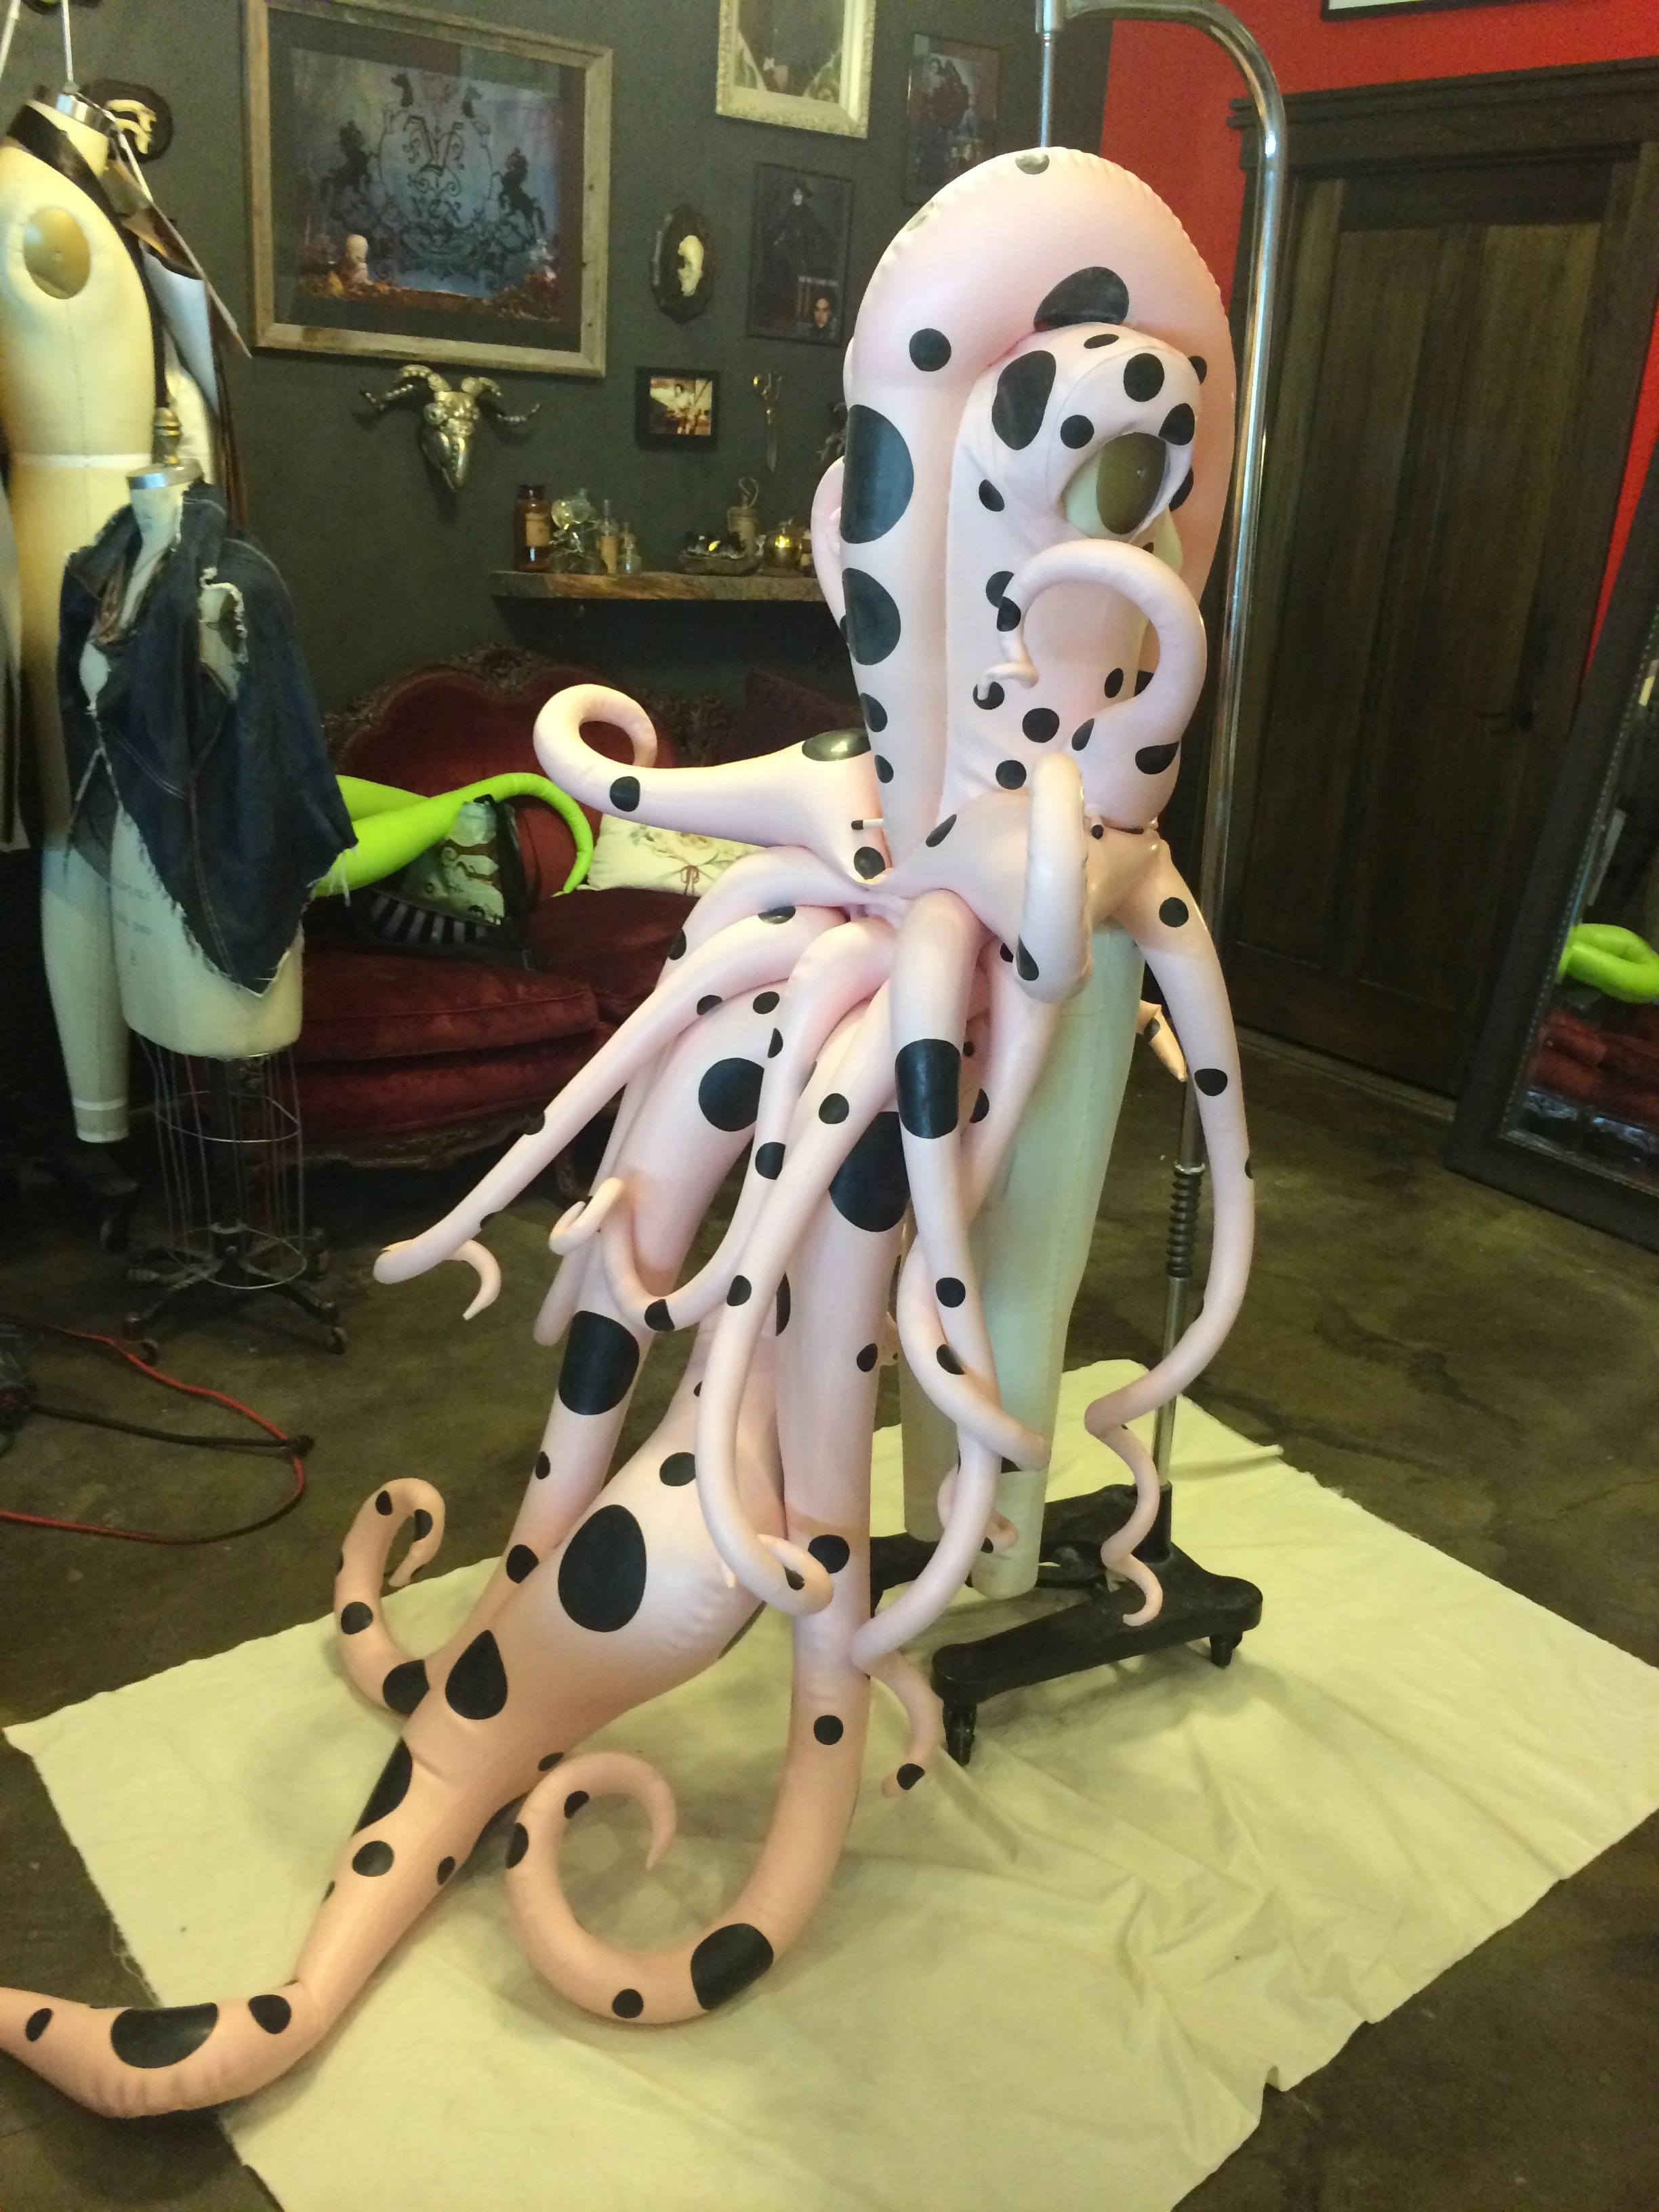 File:Vex Clothing - Octopus.jpg